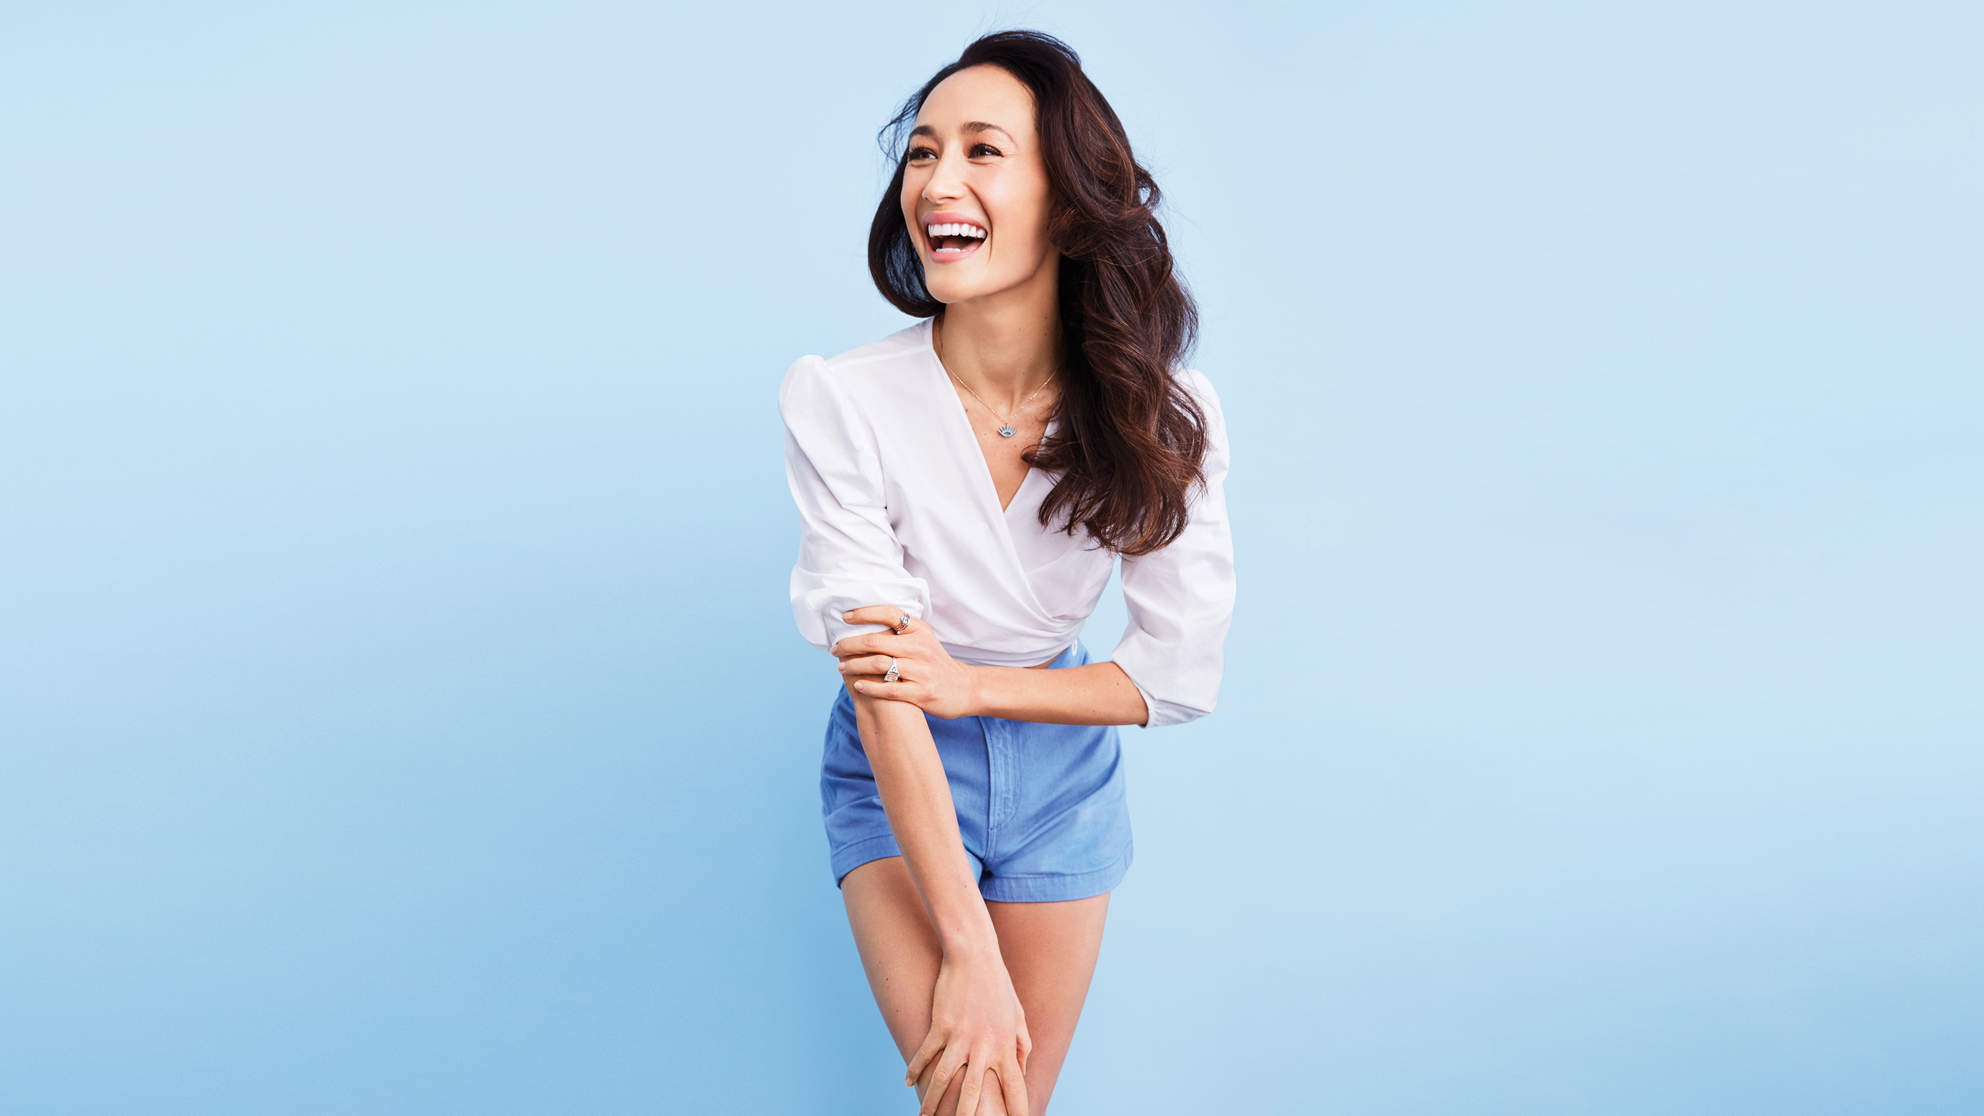 Default Iphone 7 Wallpaper Maggie Q On Being In Hollywood During The Metoo Movement